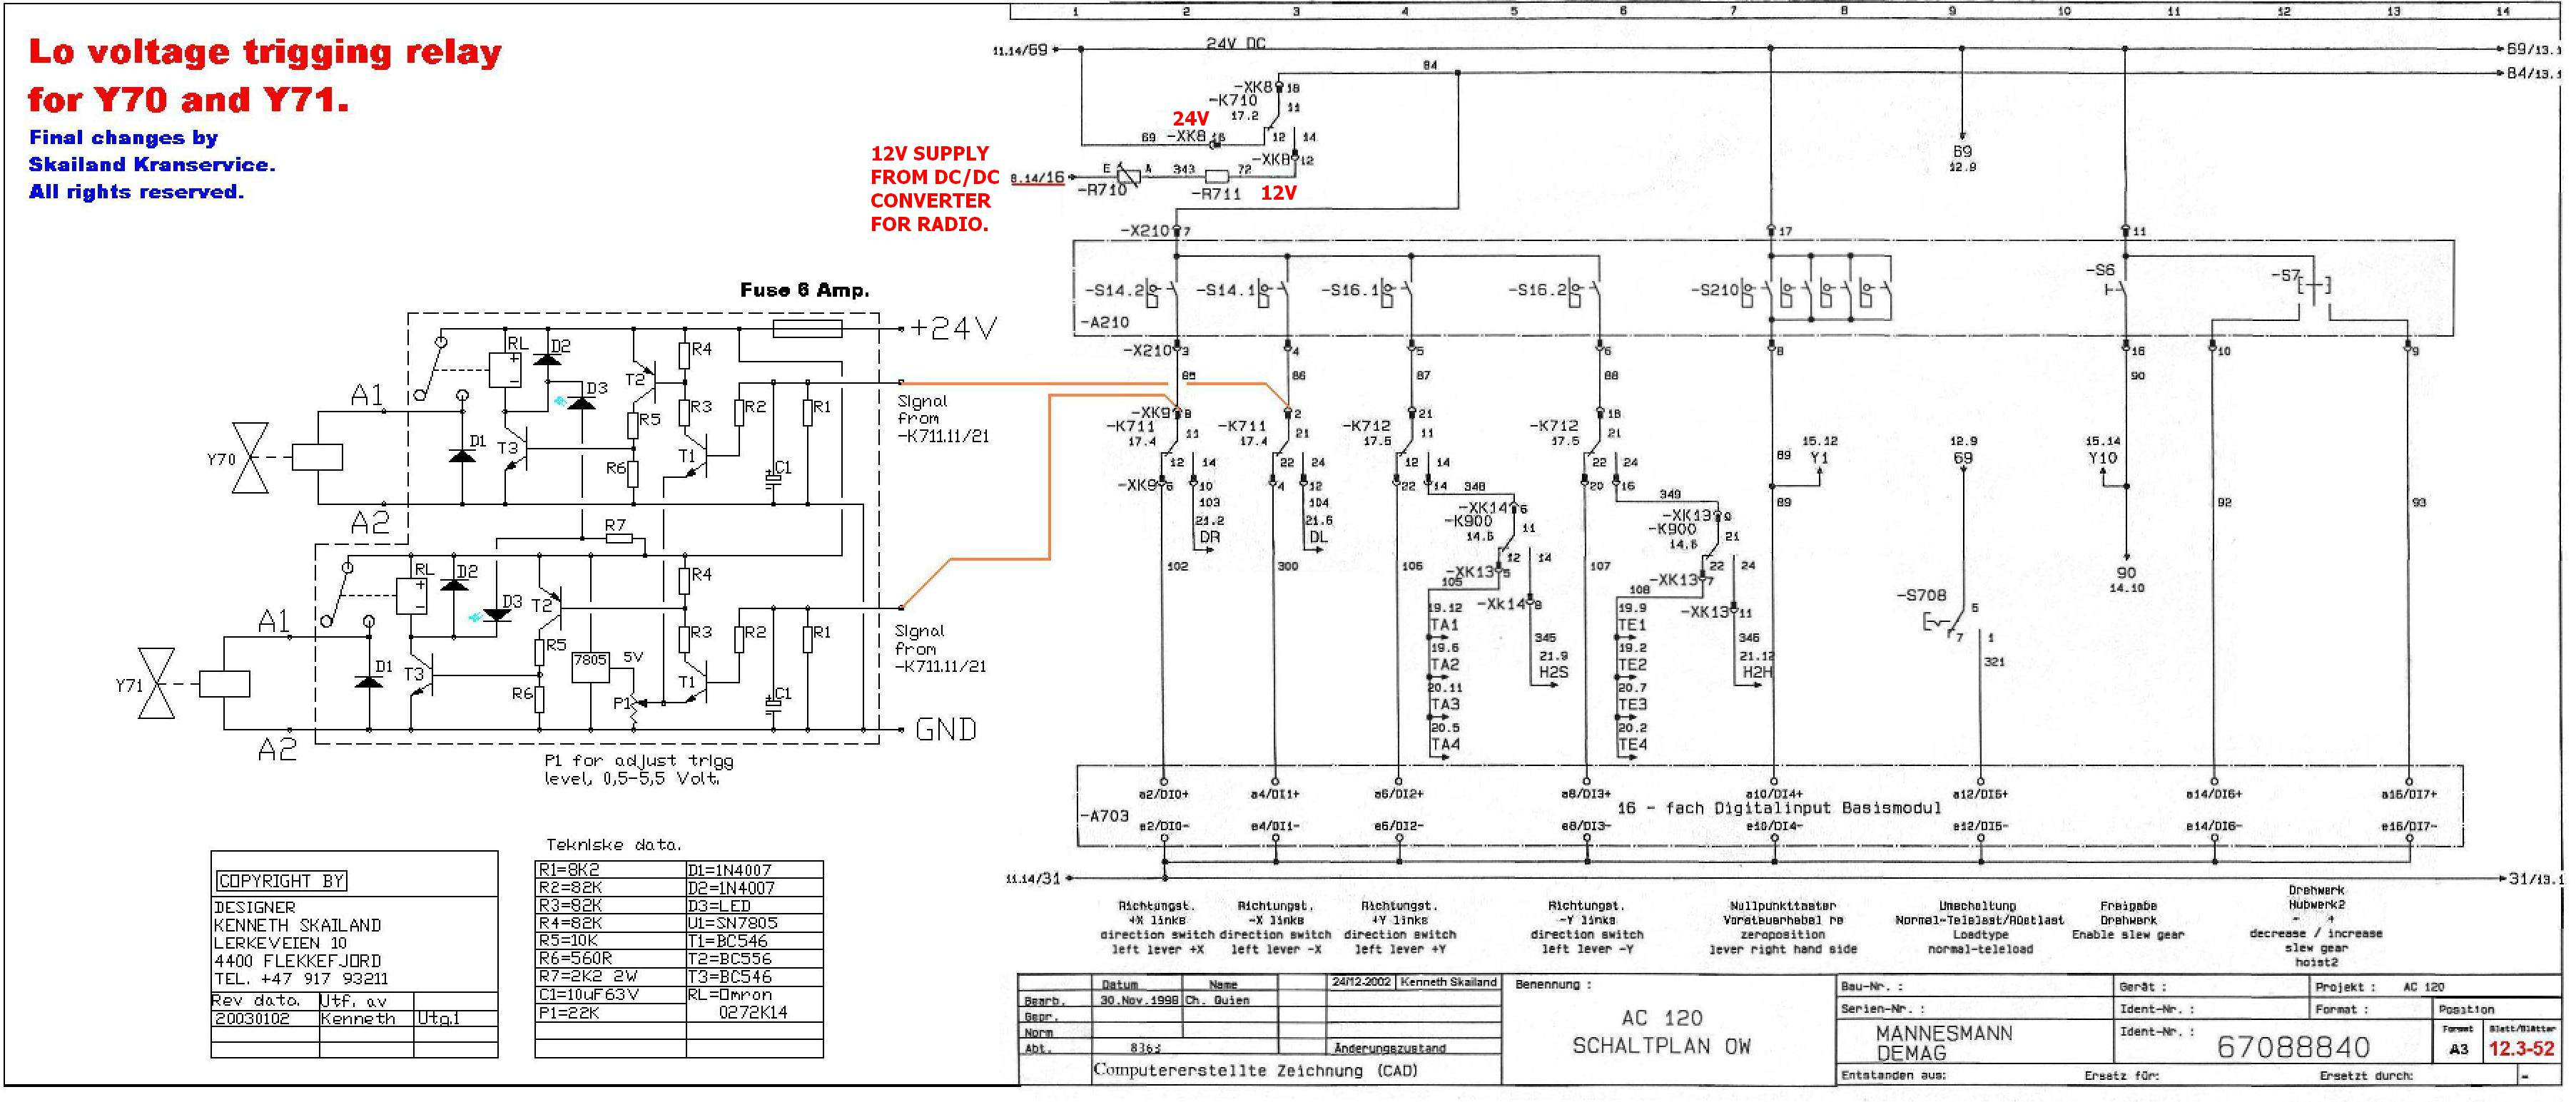 overhead crane wiring diagram Download-Wiring Diagram for Auto Crane New Famous Overhead Crane Wiring Diagram Ideas Electrical Circuit 15-r